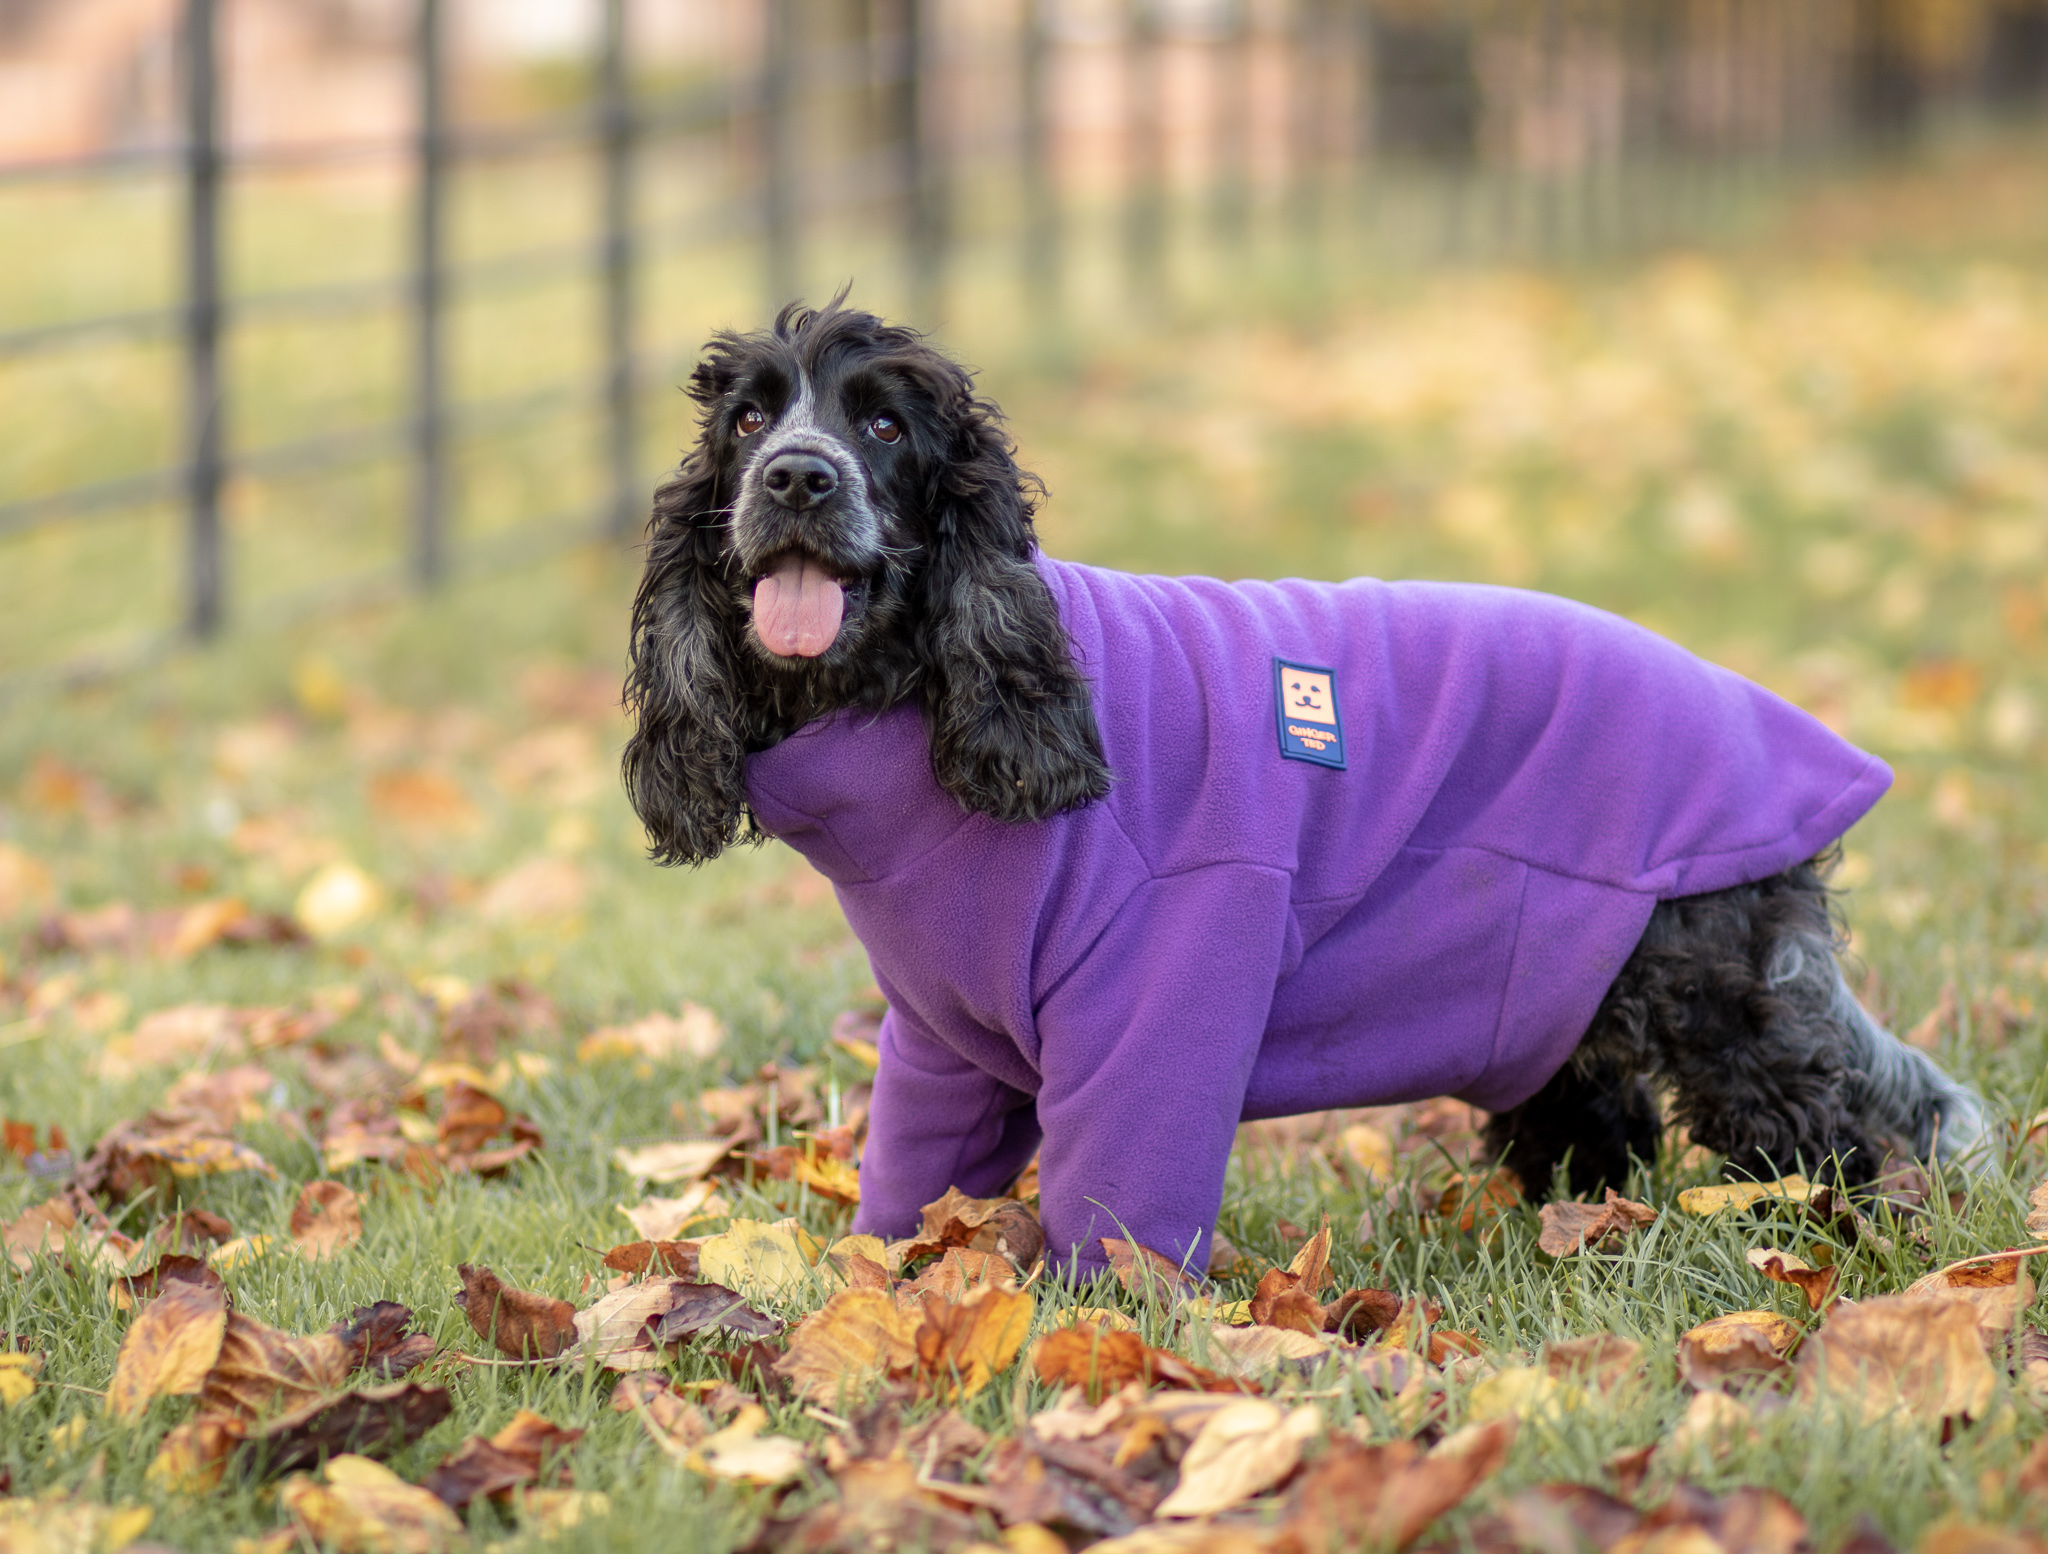 Ginger Ted Dog Coat and Dog Fleece Jumper Review